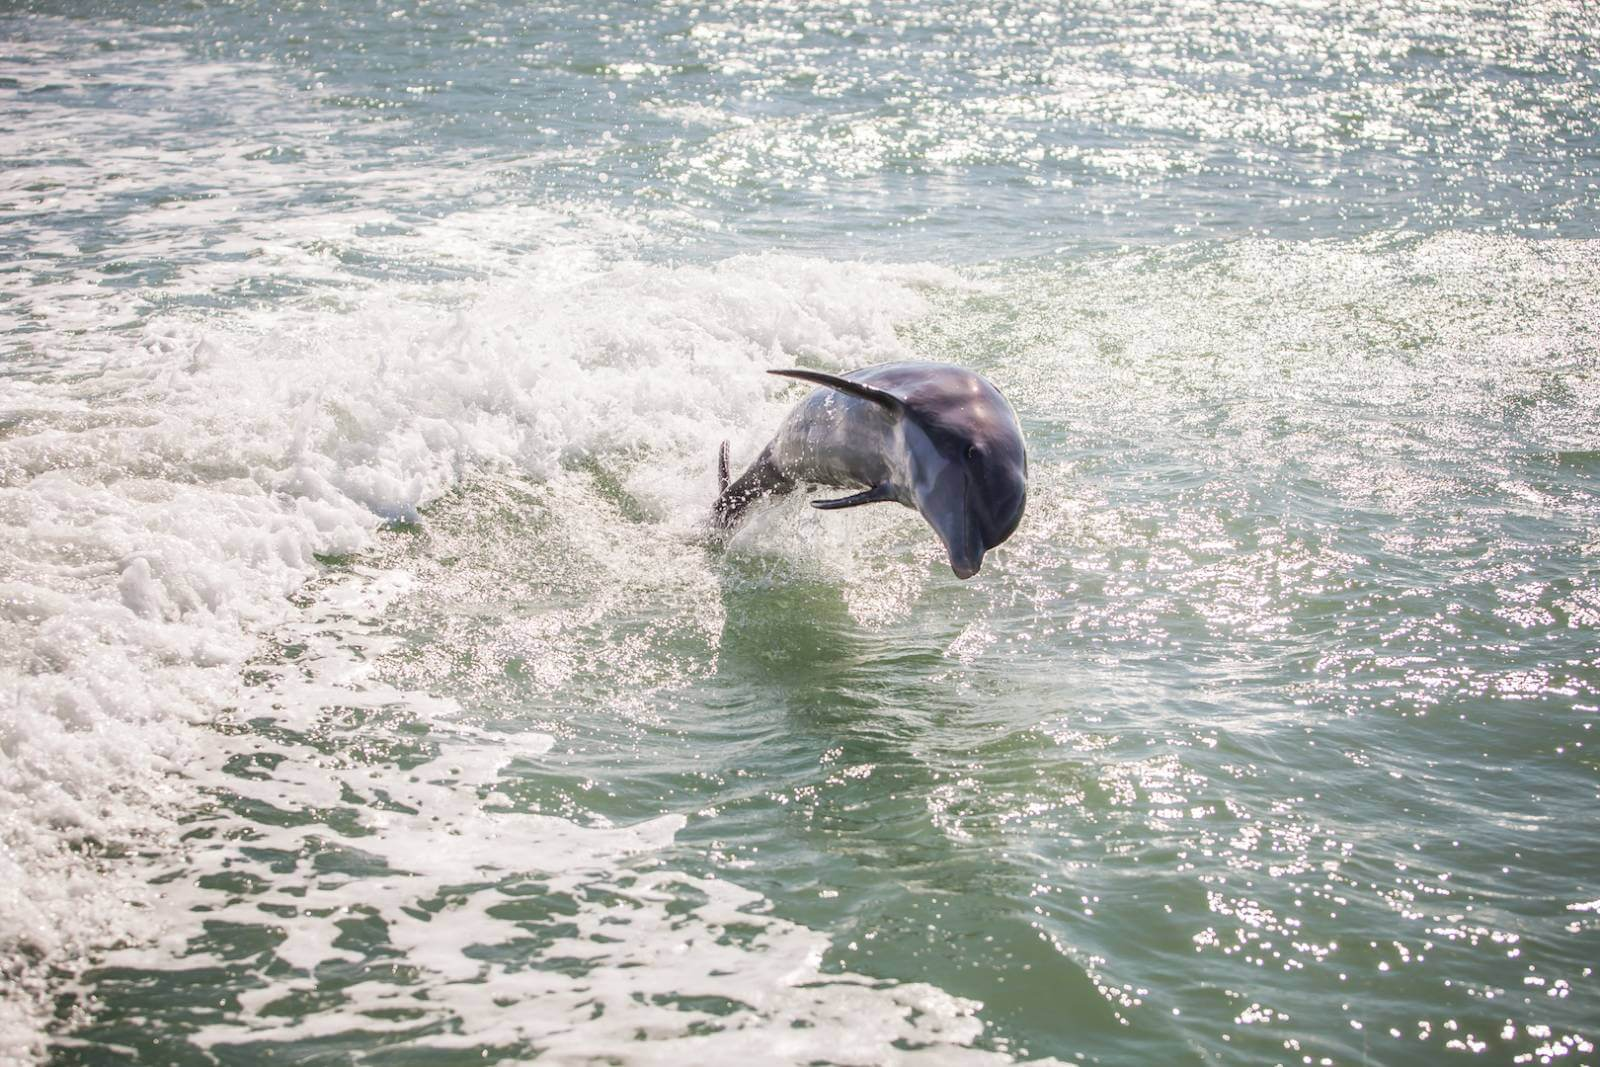 Getting out on the water and exploring Southwest Florida on a guided boat tour will provide up-close sightings of Florida's wildlife including dolphins. Photo by Mary Carol Fitzgerald #wildlife #florida #vacation #dolphins